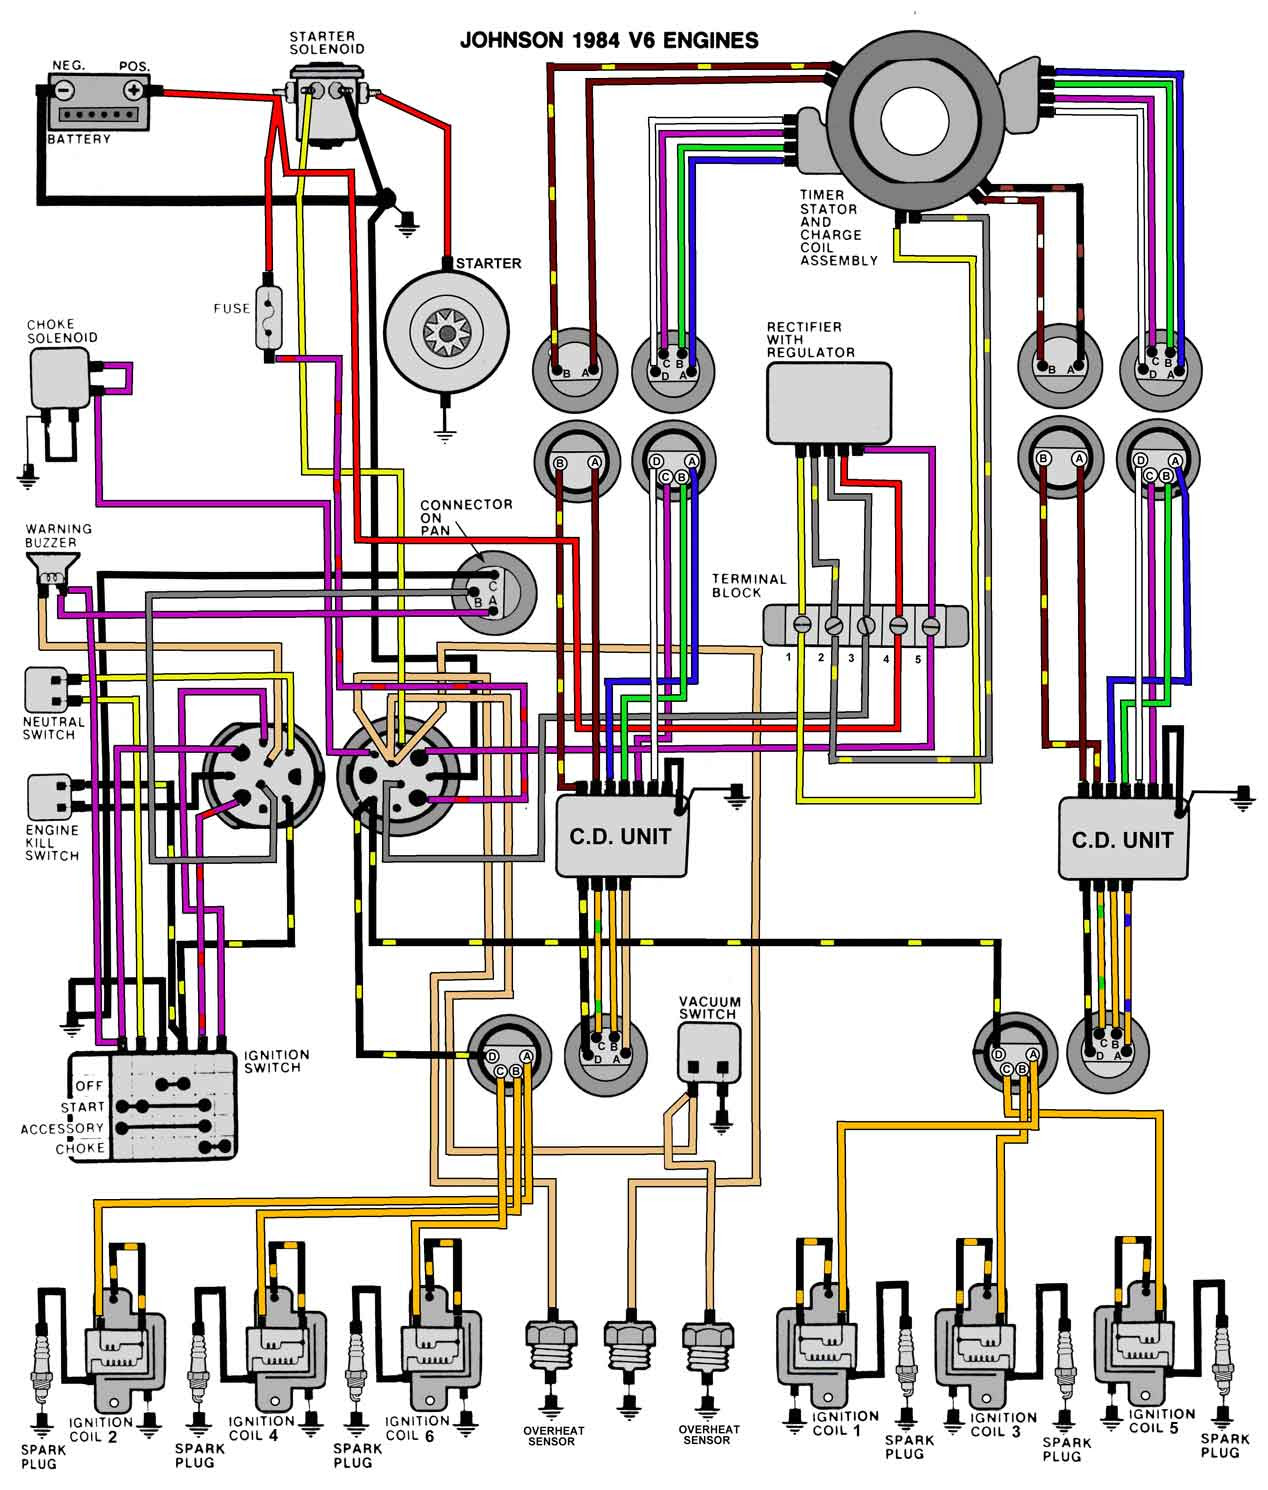 34 Evinrude Ignition Switch Wiring Diagram